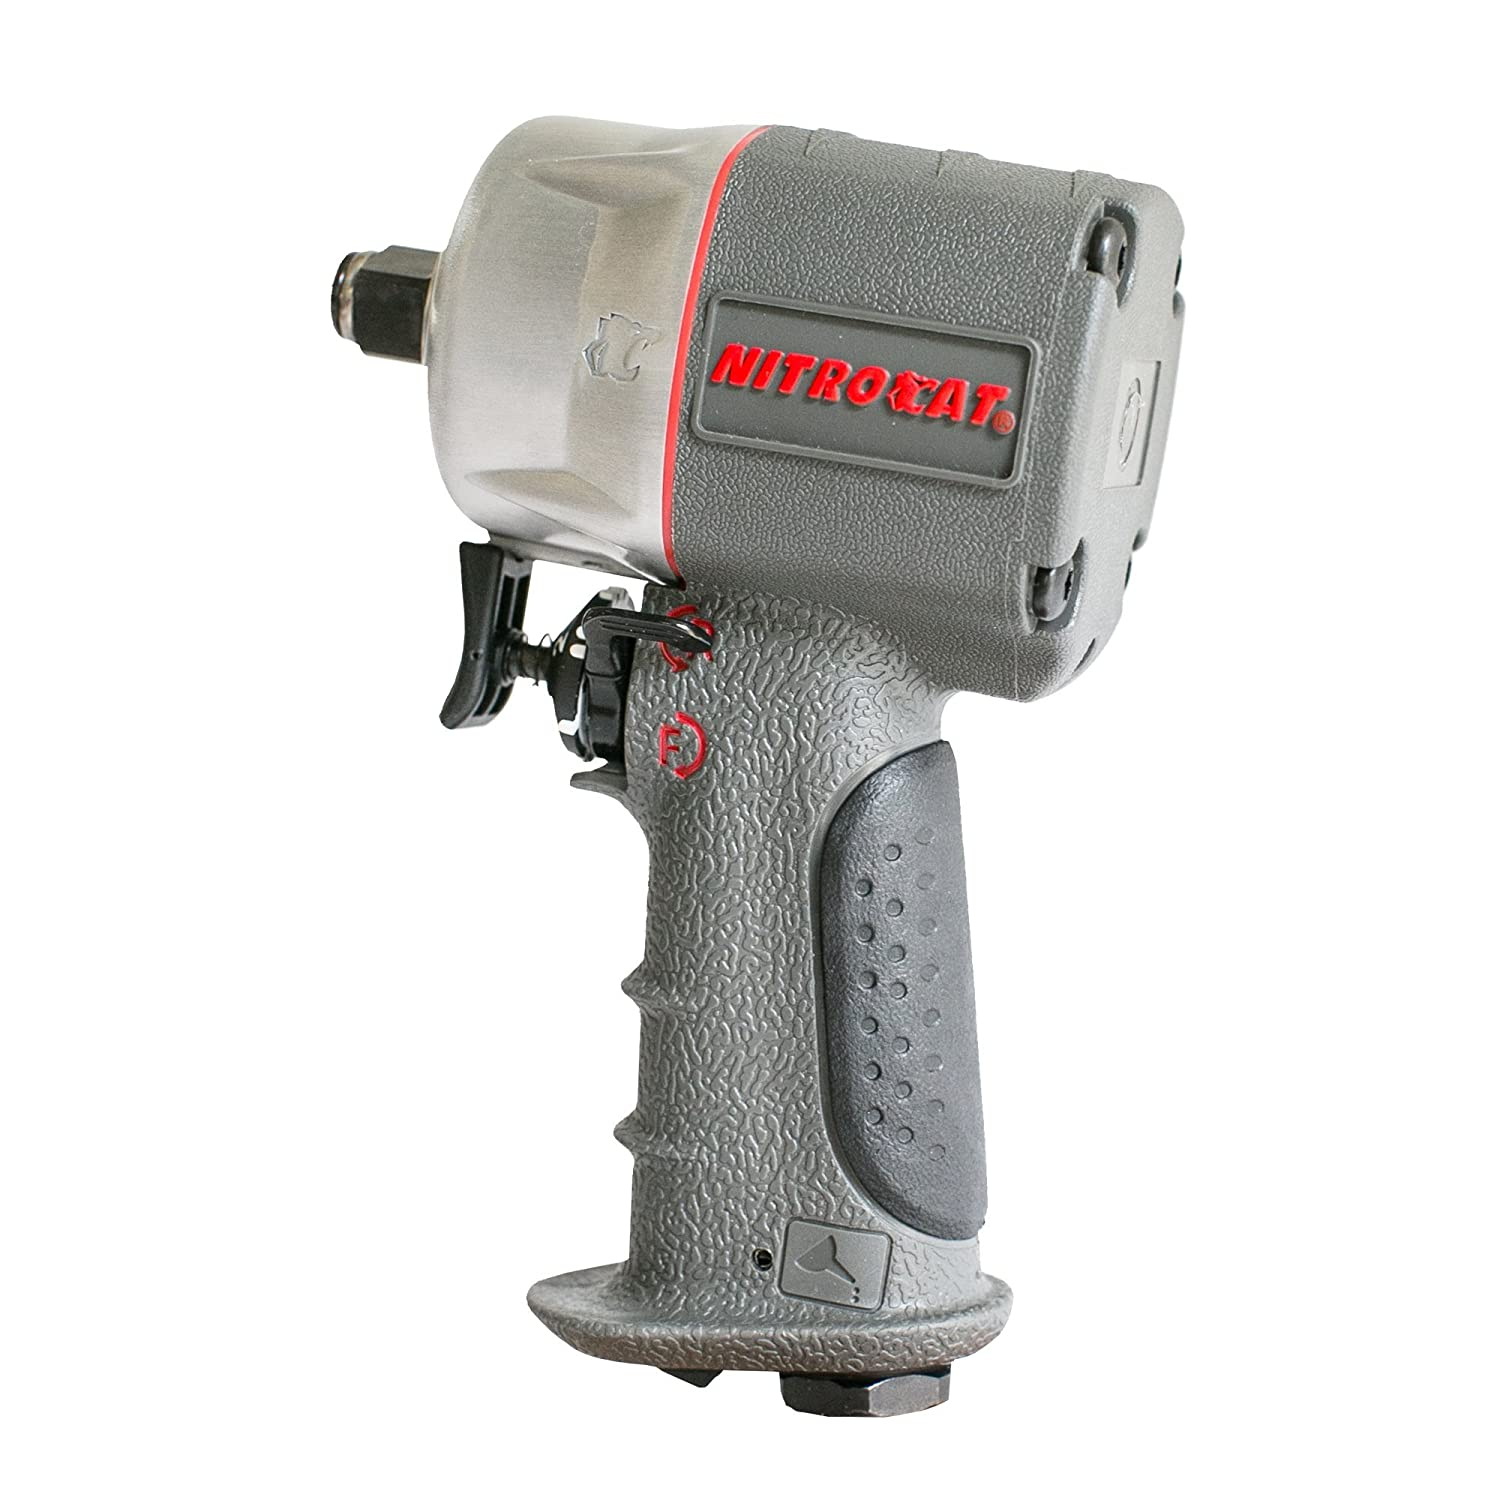 AIRCAT 1 2 Compact Composite Impact Wrench